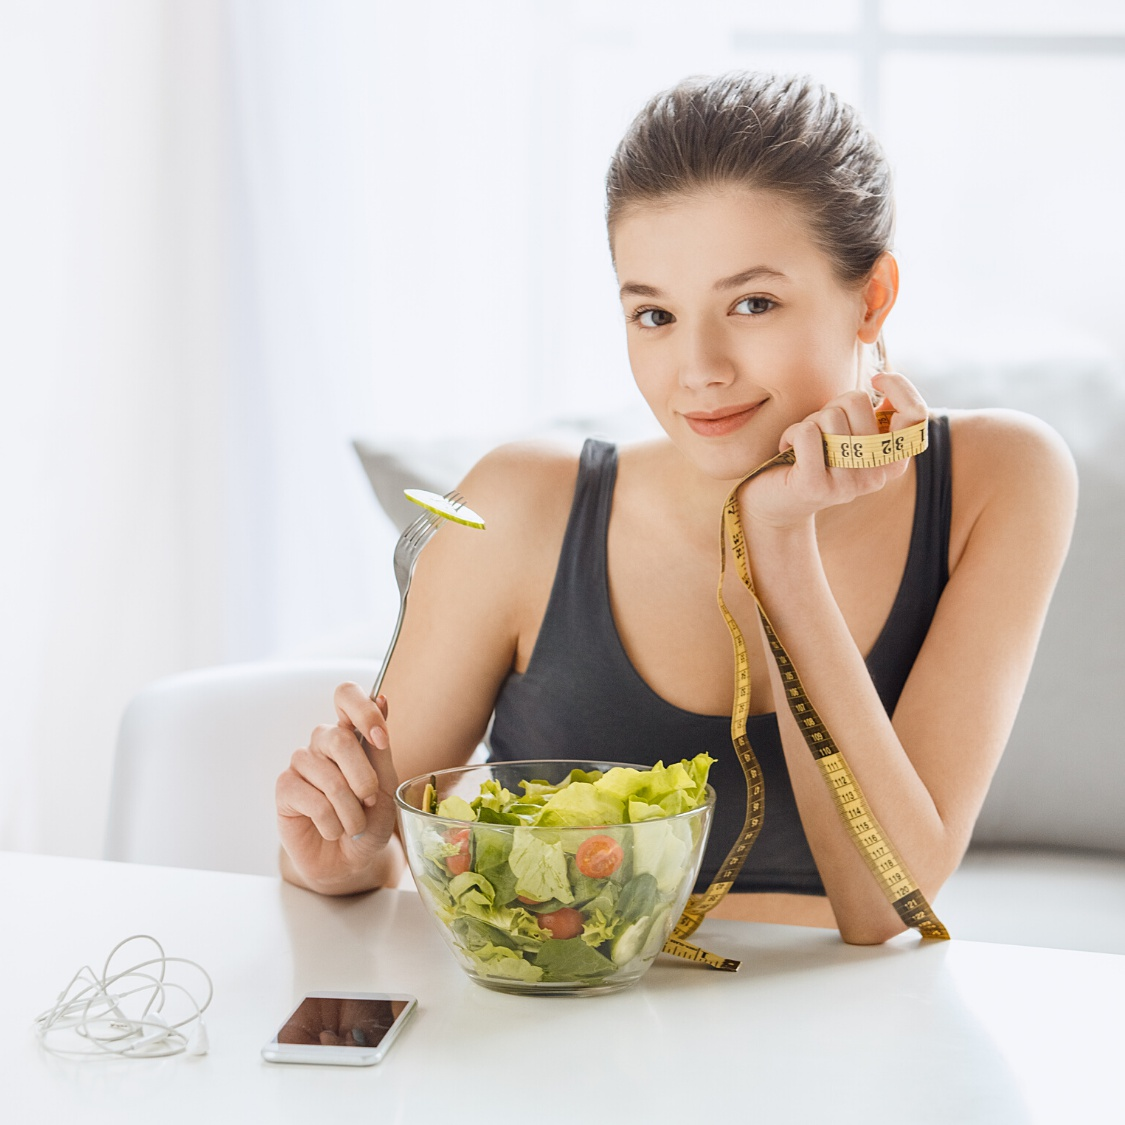 An image of a woman eating a fresh salad.